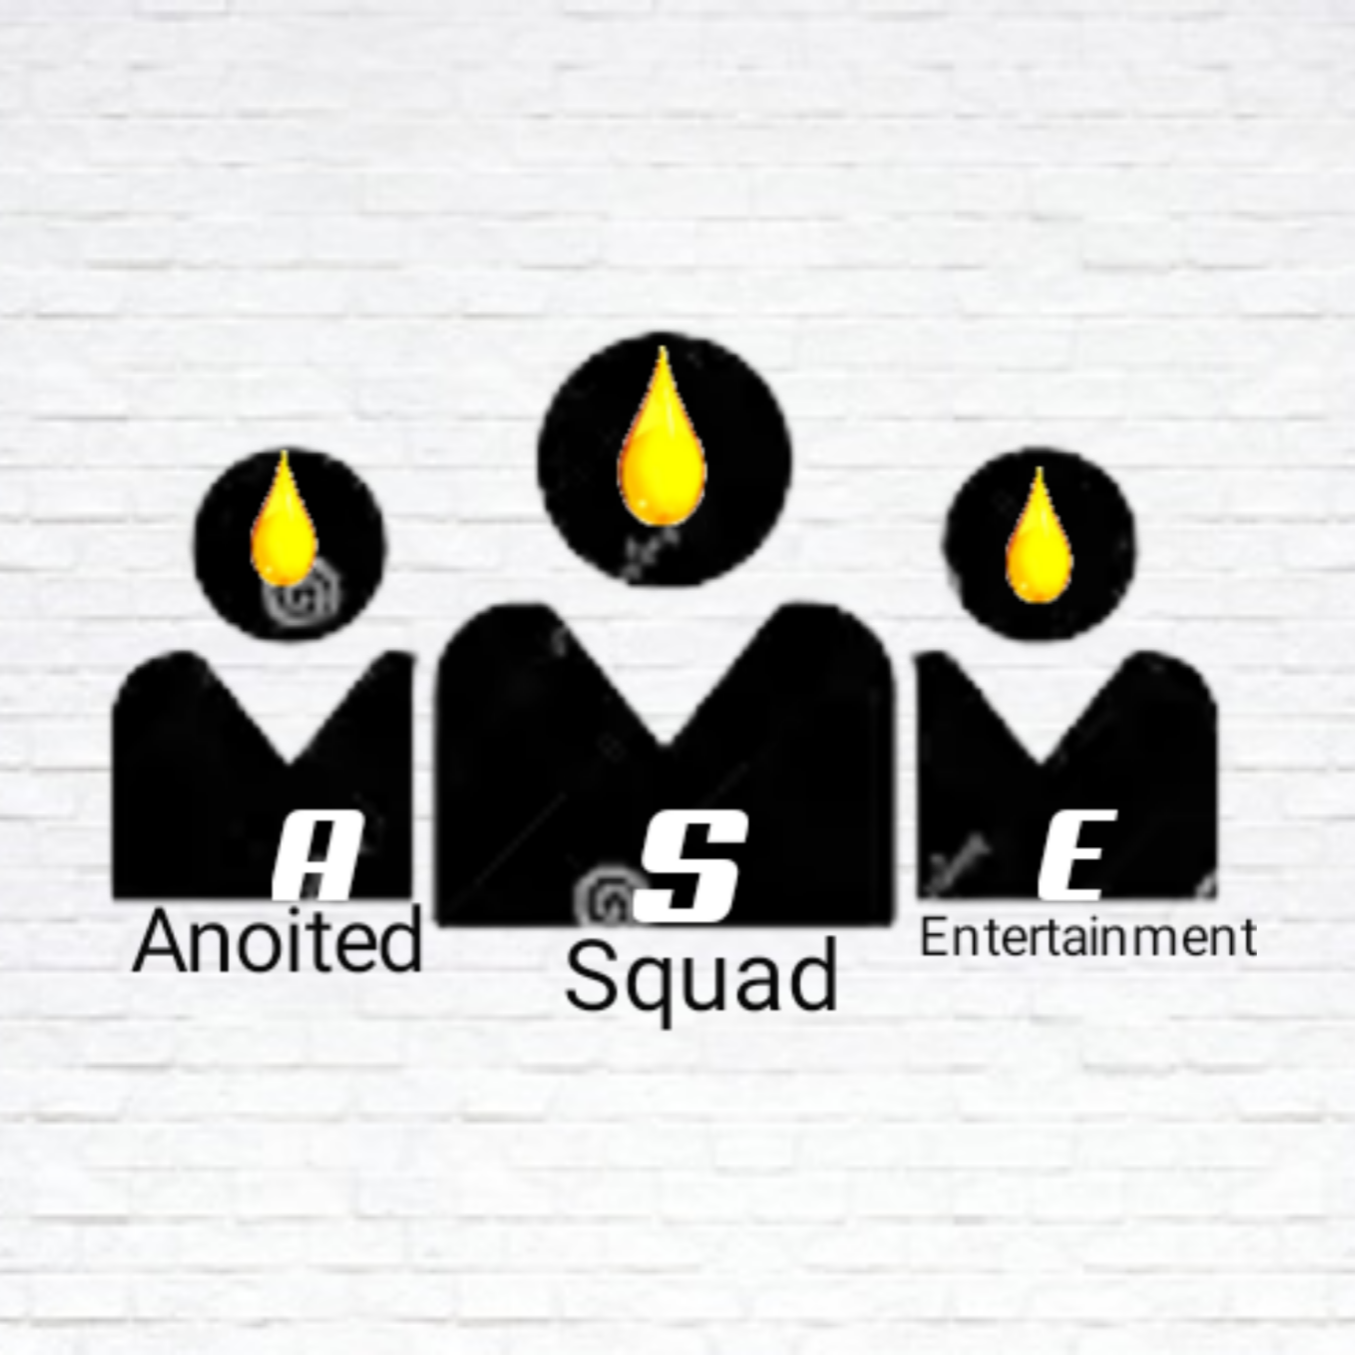 Annoited Squad Ent.